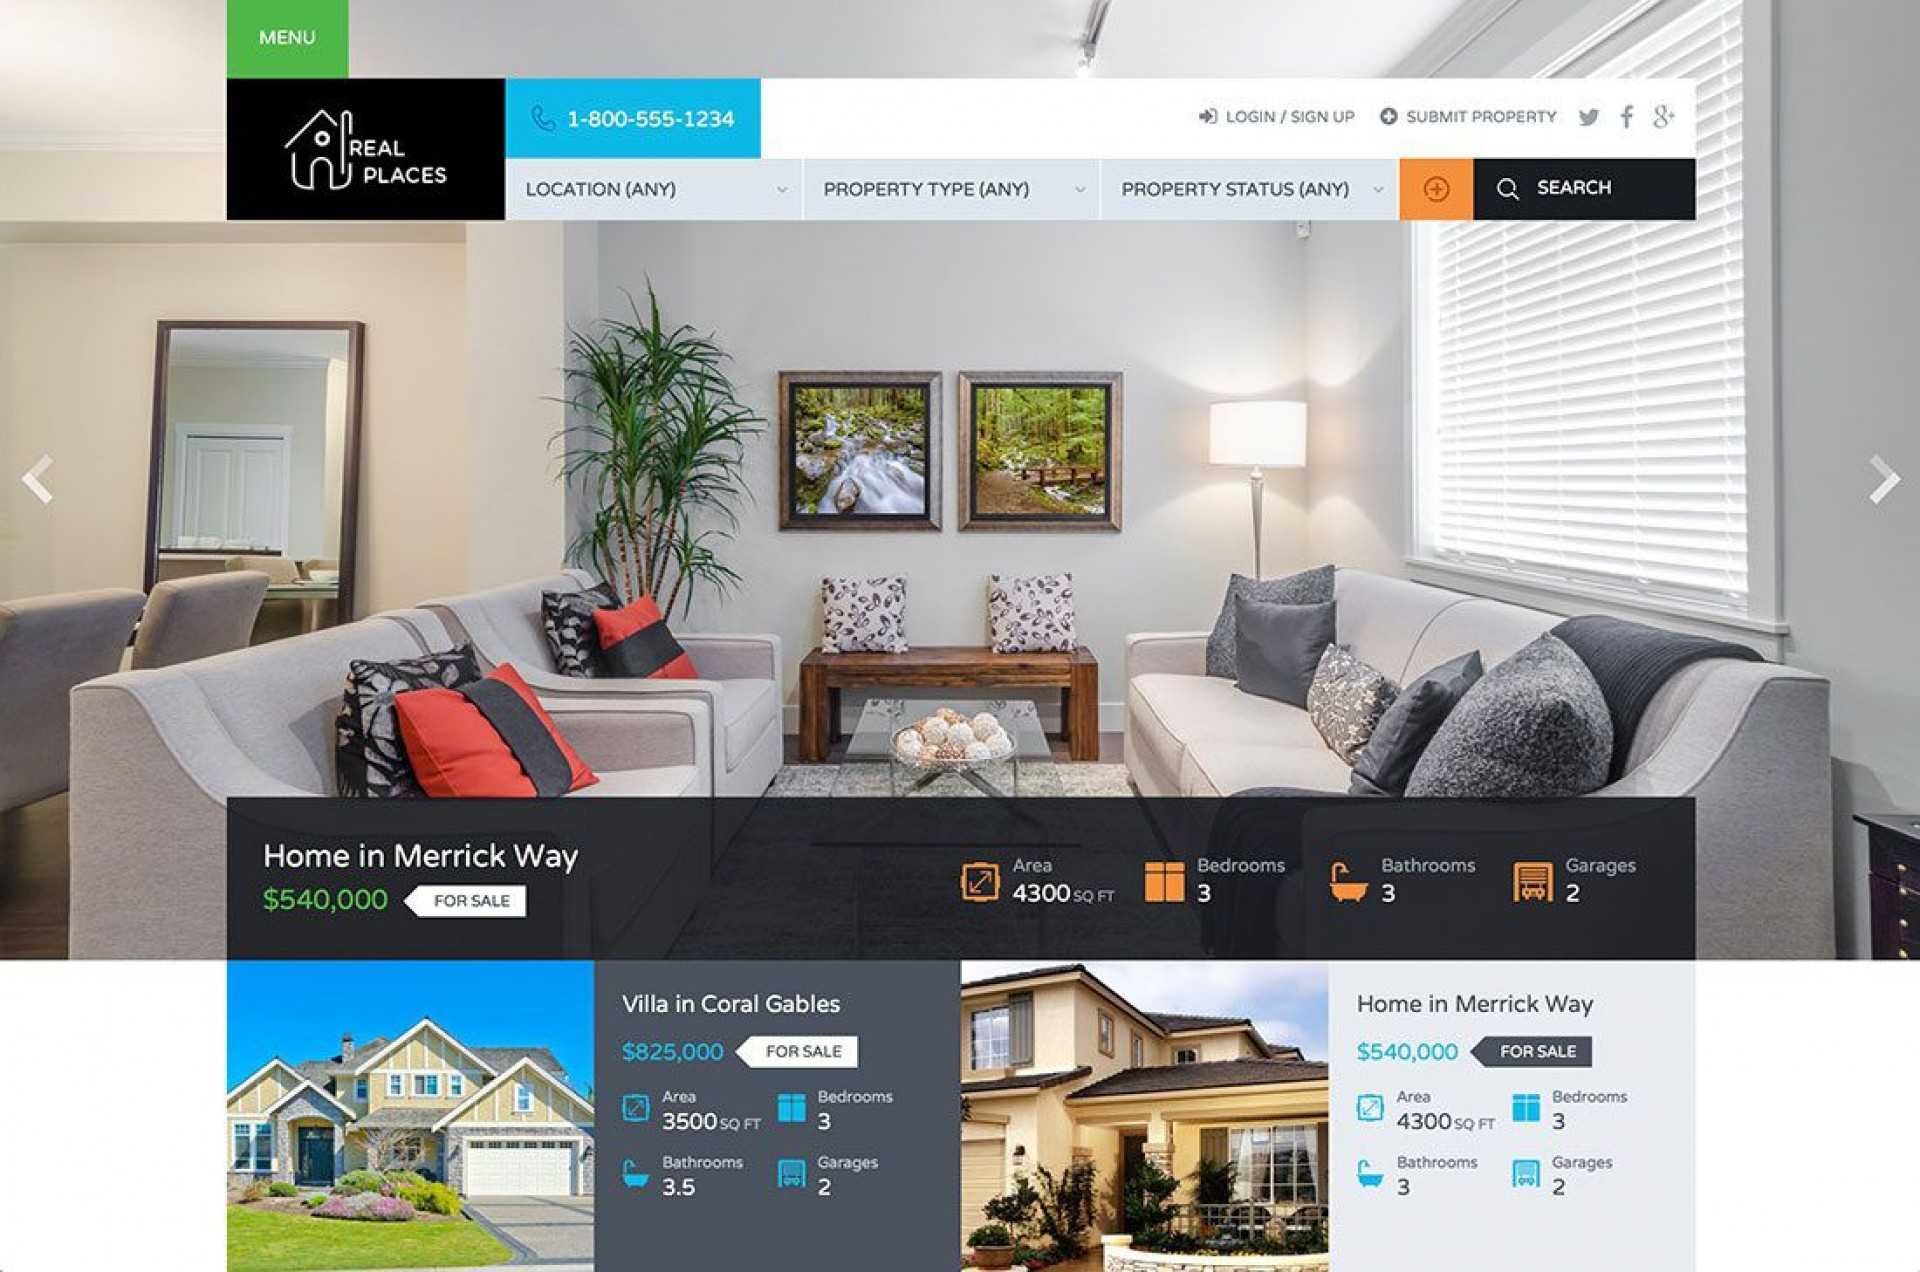 006 Best Real Estate Template Wordpres Inspiration  Homepres - Theme Free Download Realtyspace1920